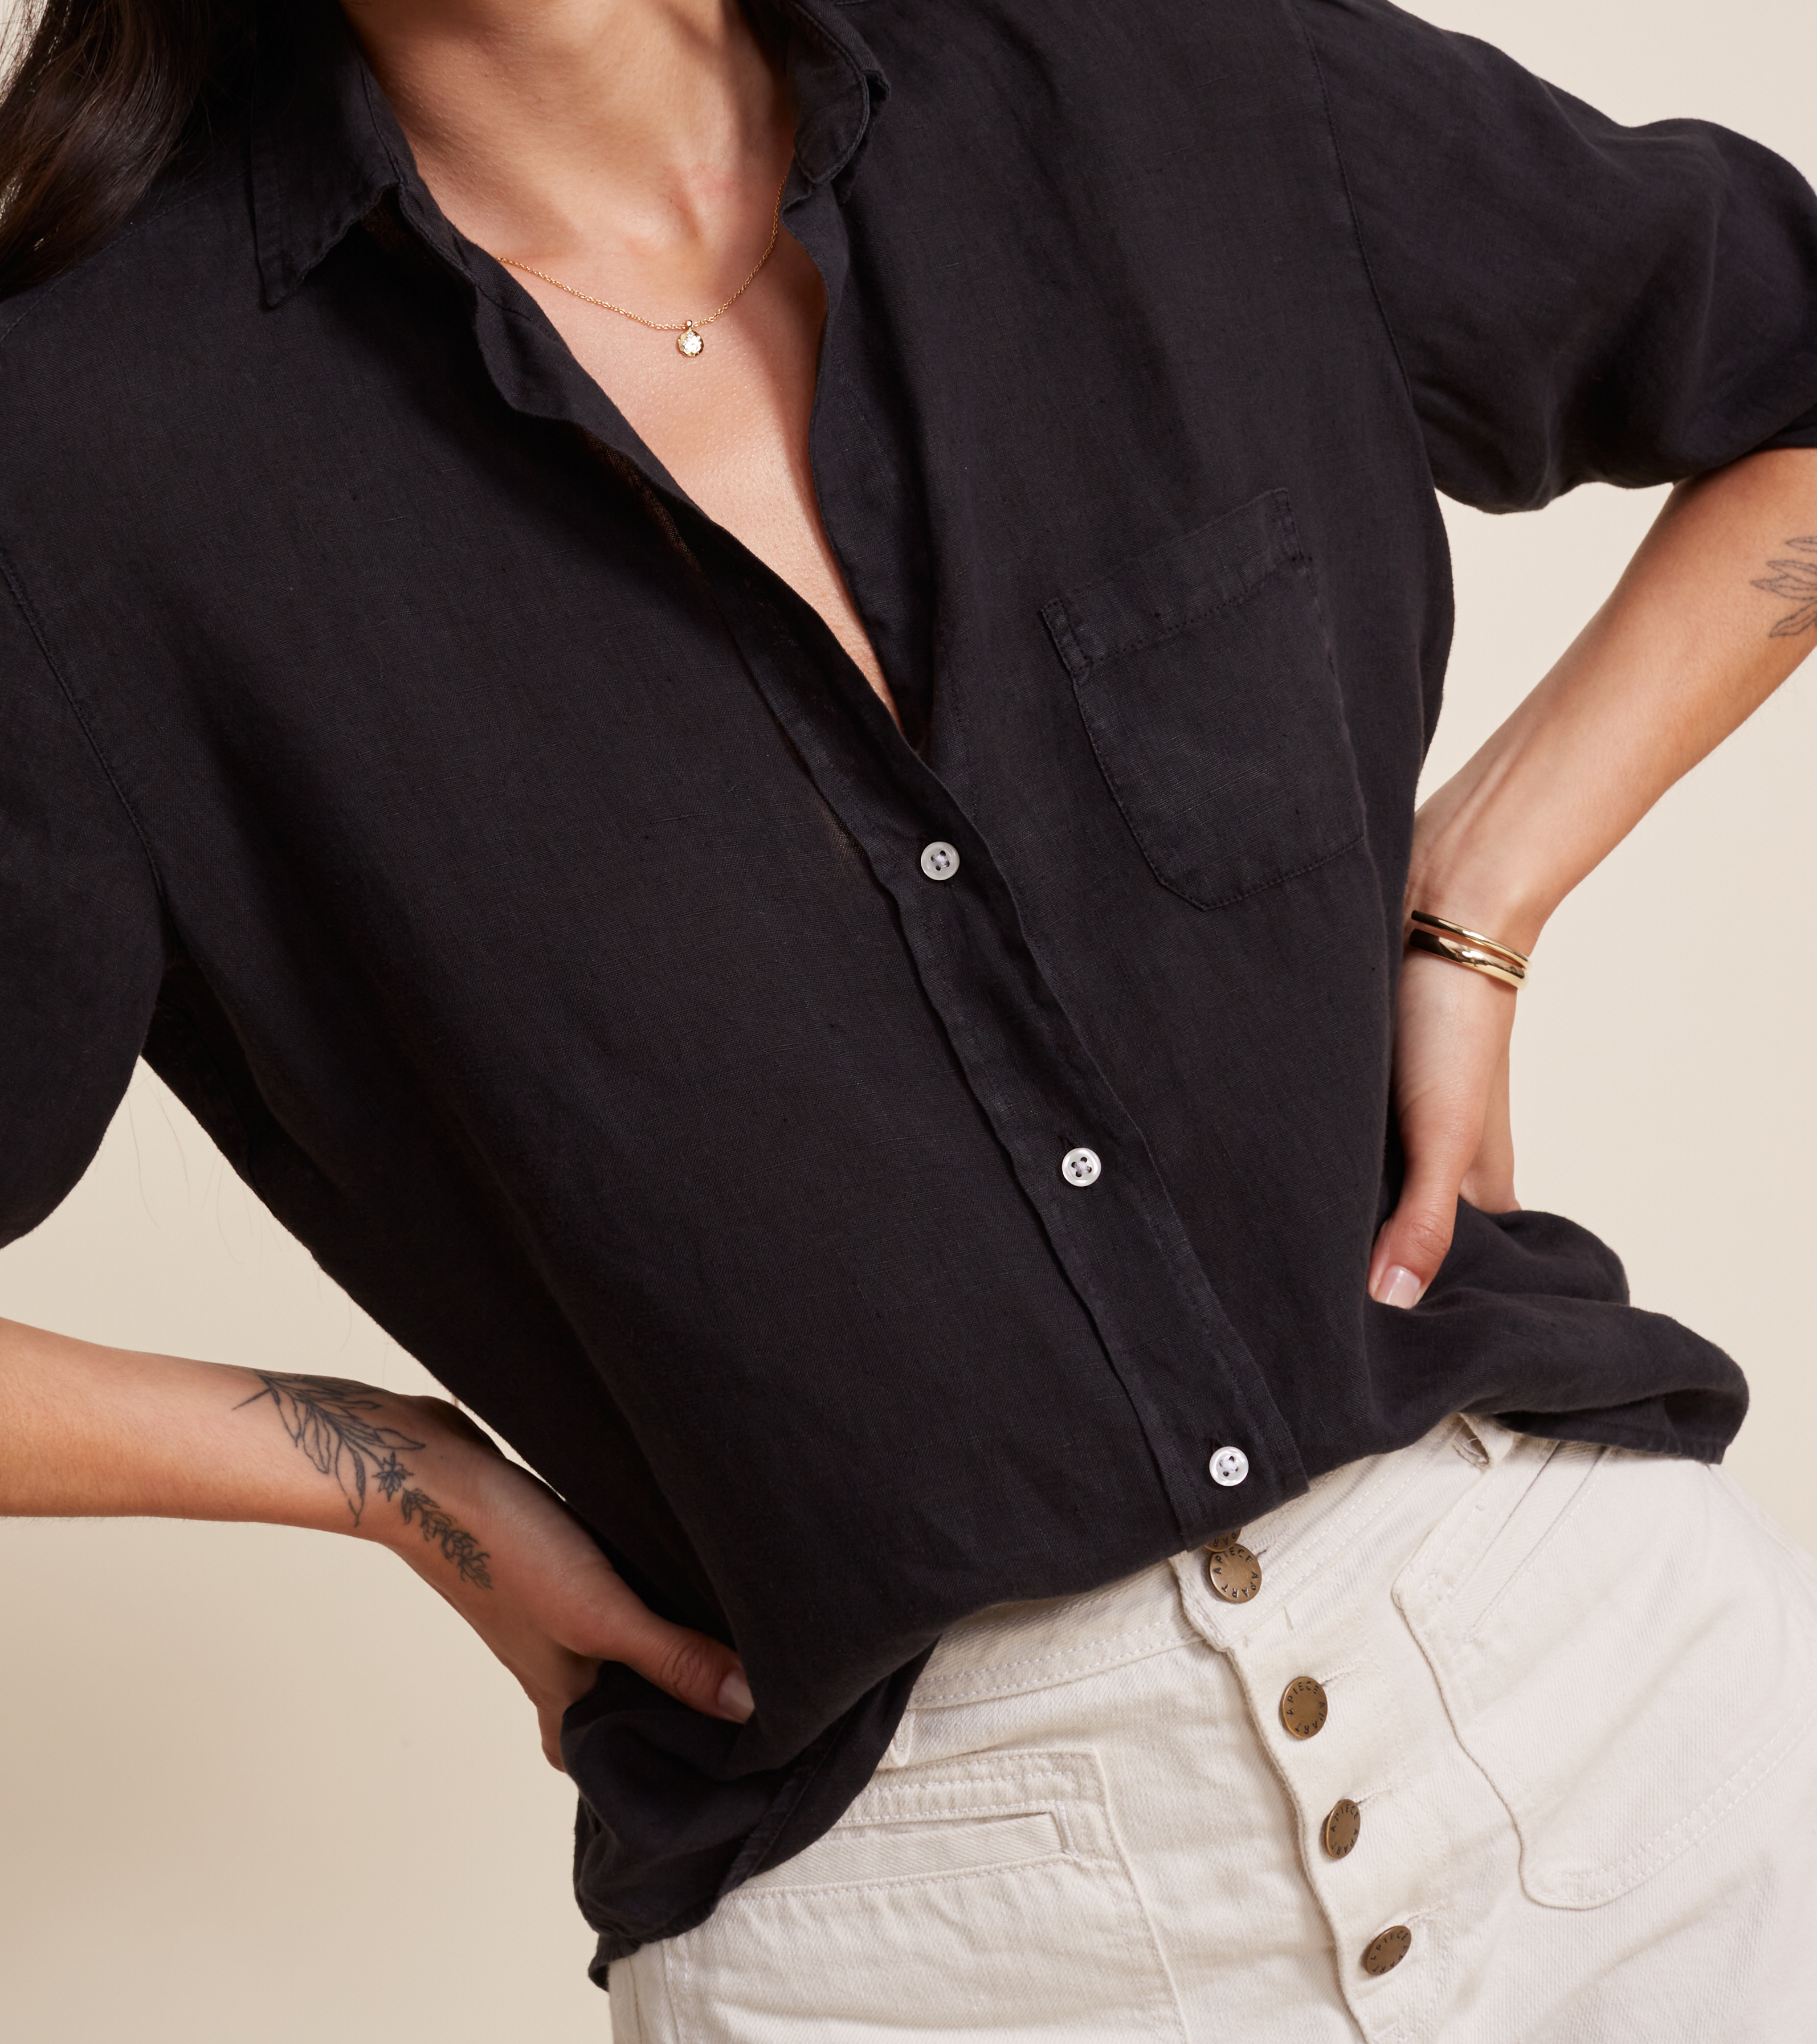 Image of The Hero Button-Up Shirt Black, Tumbled Linen